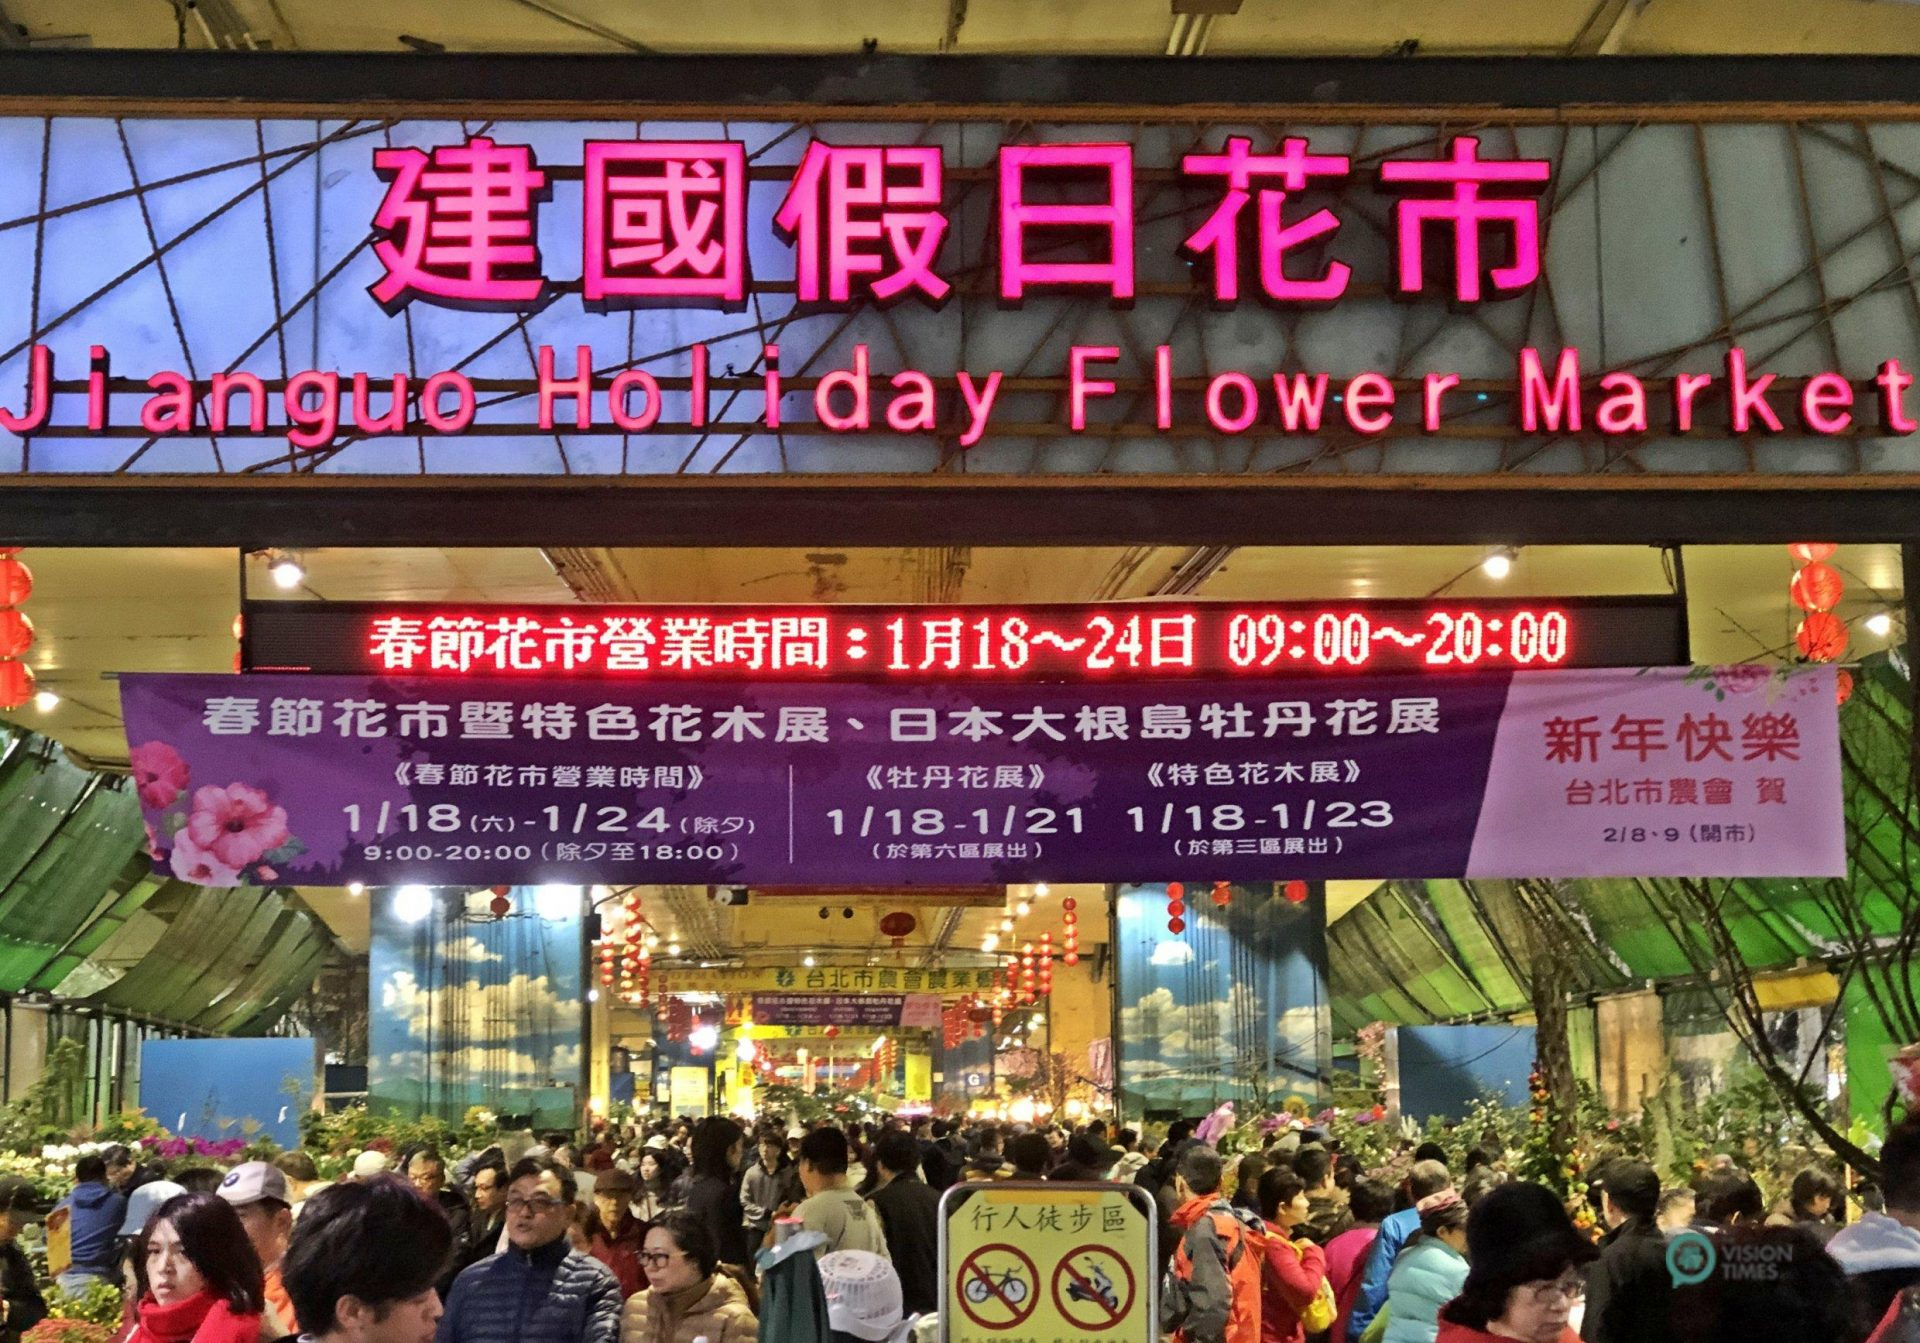 Taipei Jianguo Holiday Flower Market is the most popular destination for purchasing flowers for the Lunar New Year in Taipei. (Image: Billy Shyu / Vision Times)